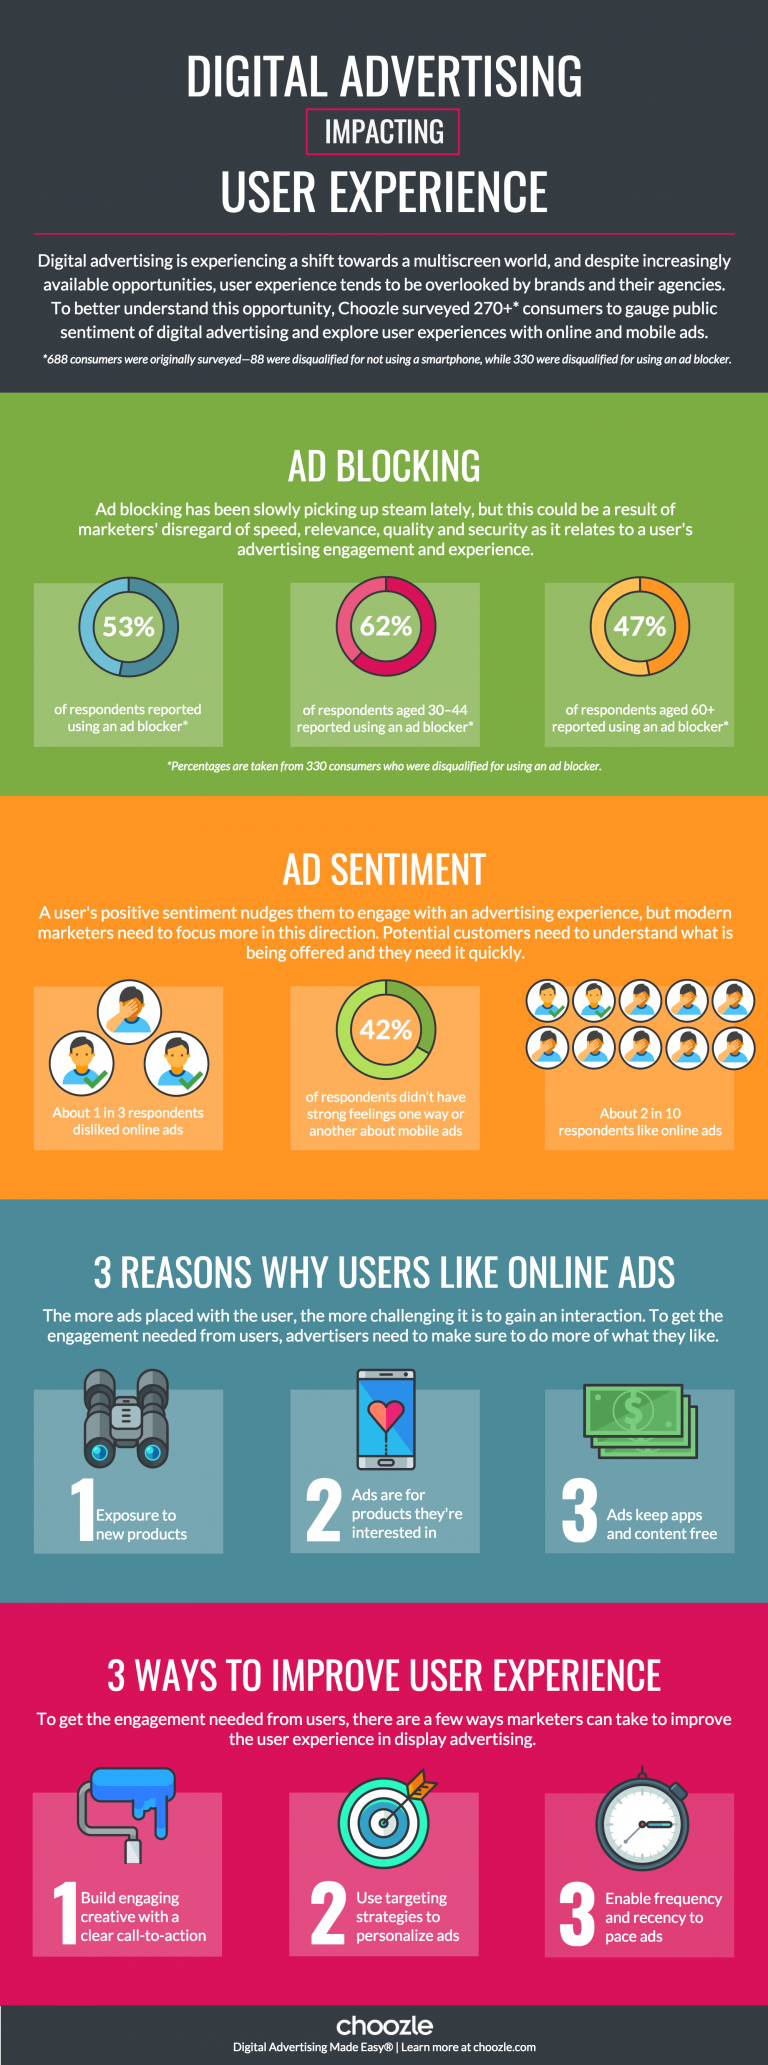 Digital Advertising Impacting User Experience